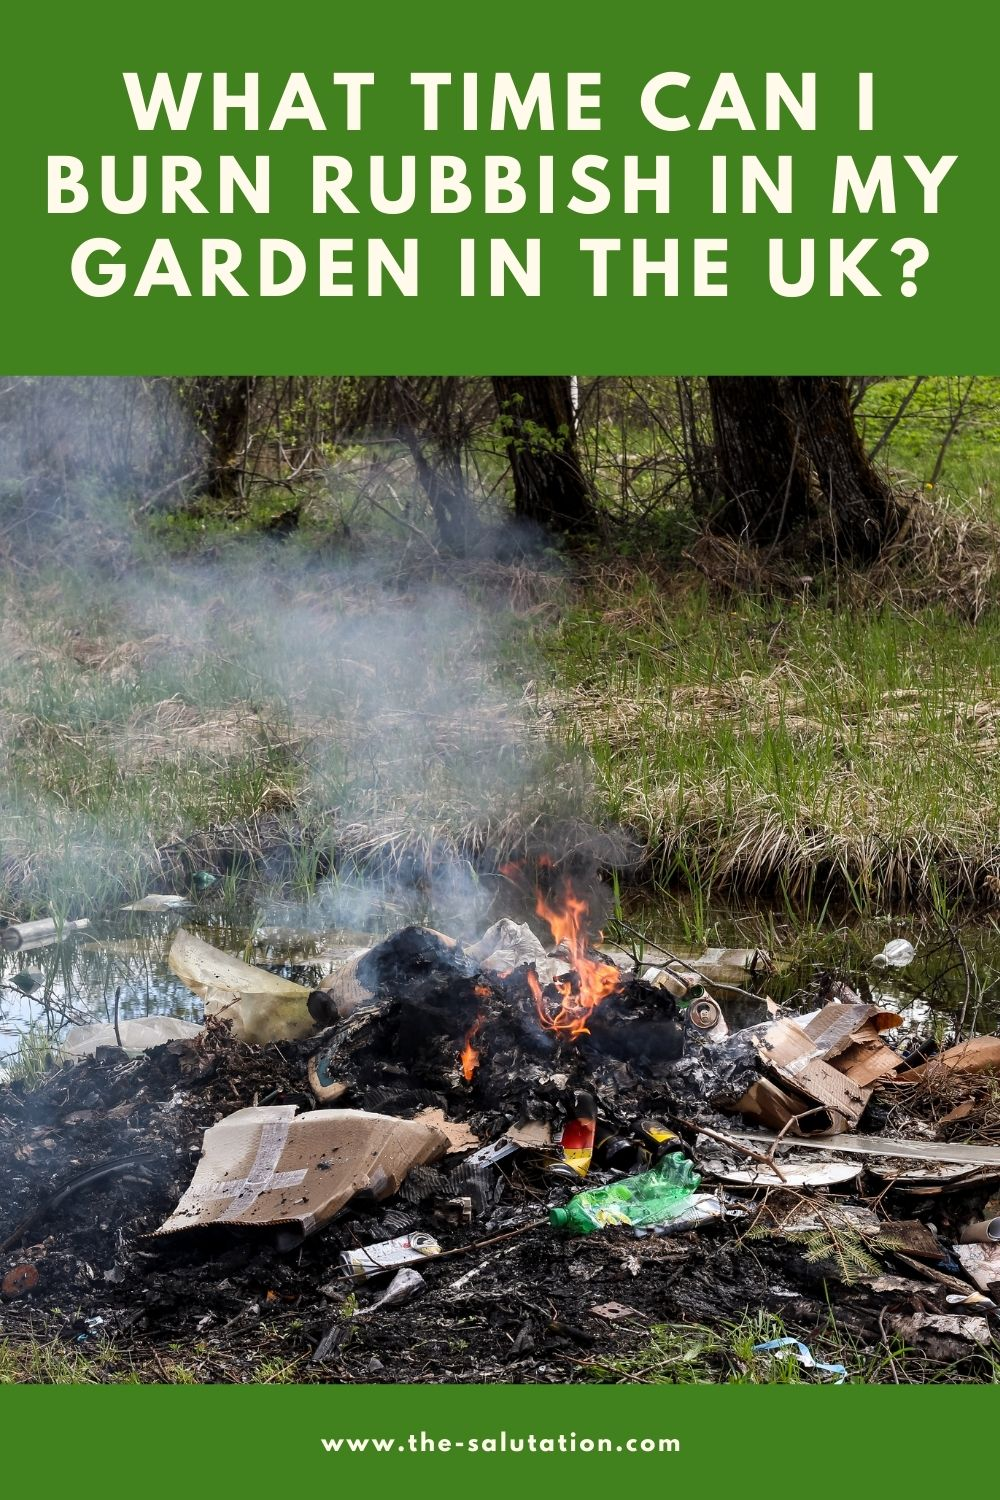 What Time Can I Burn Rubbish in My Garden in the UK 1